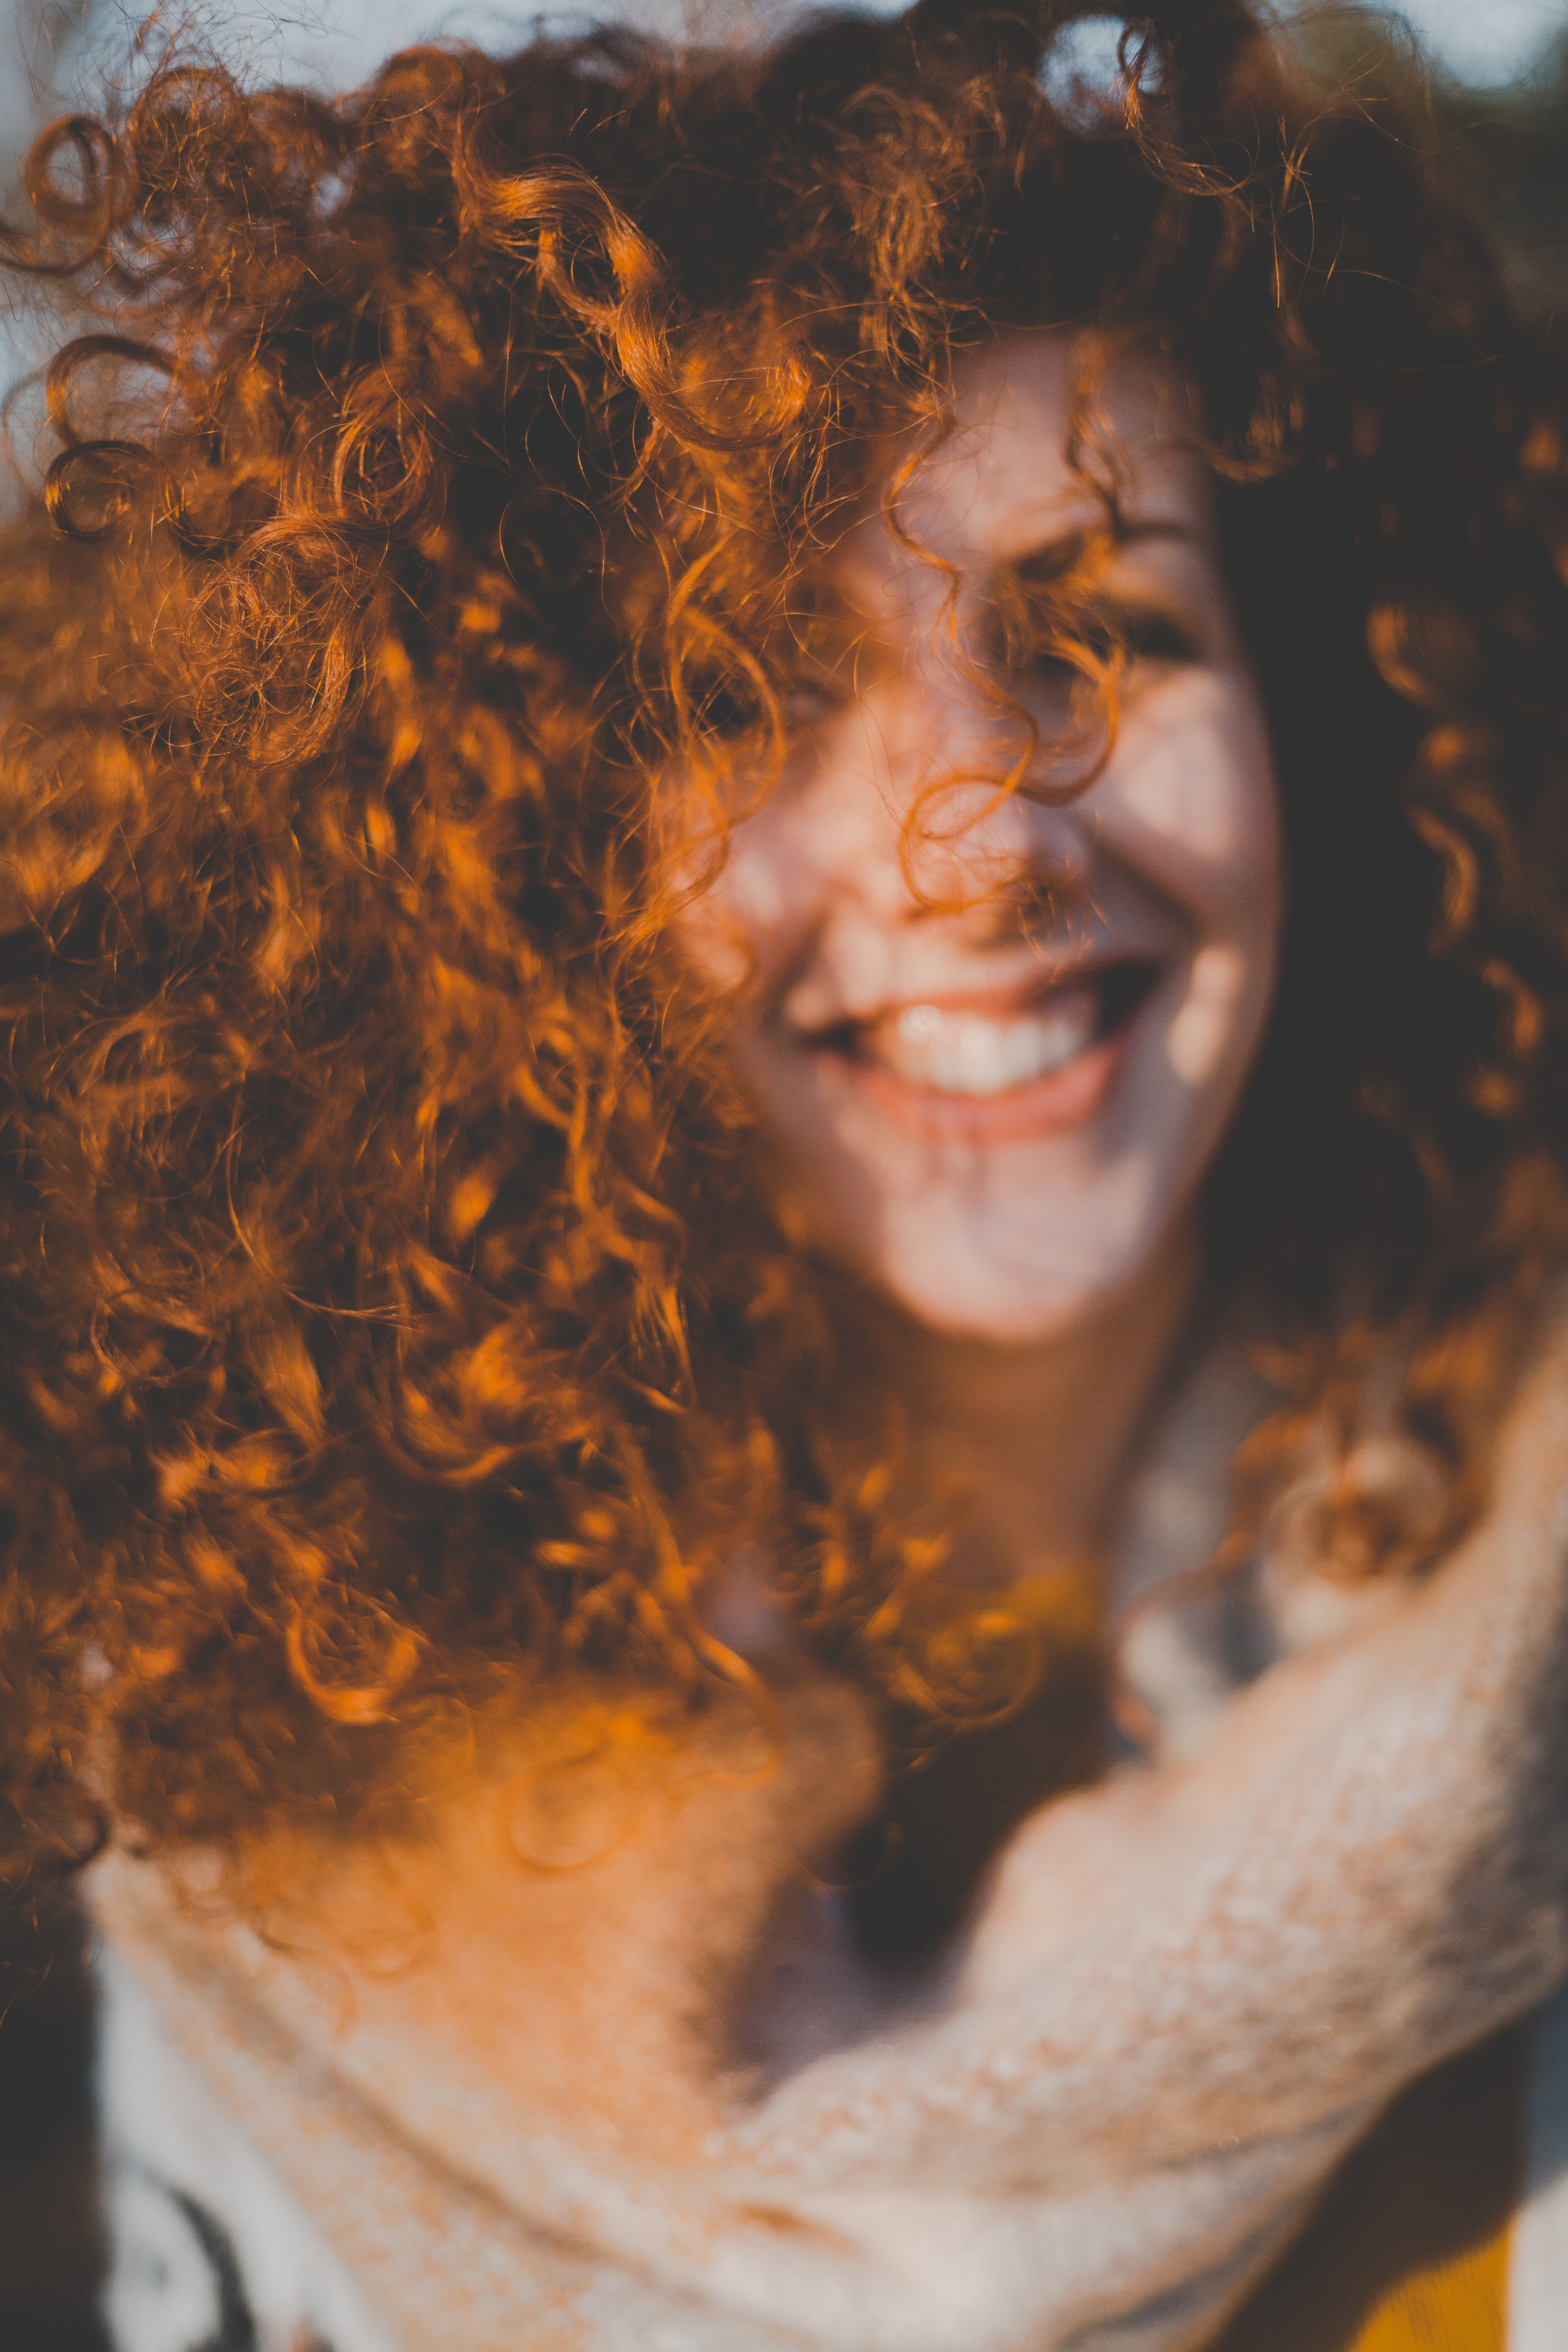 Portrait of Curly Haired Girl, Adult, Portrait, Lady, Model, HQ Photo